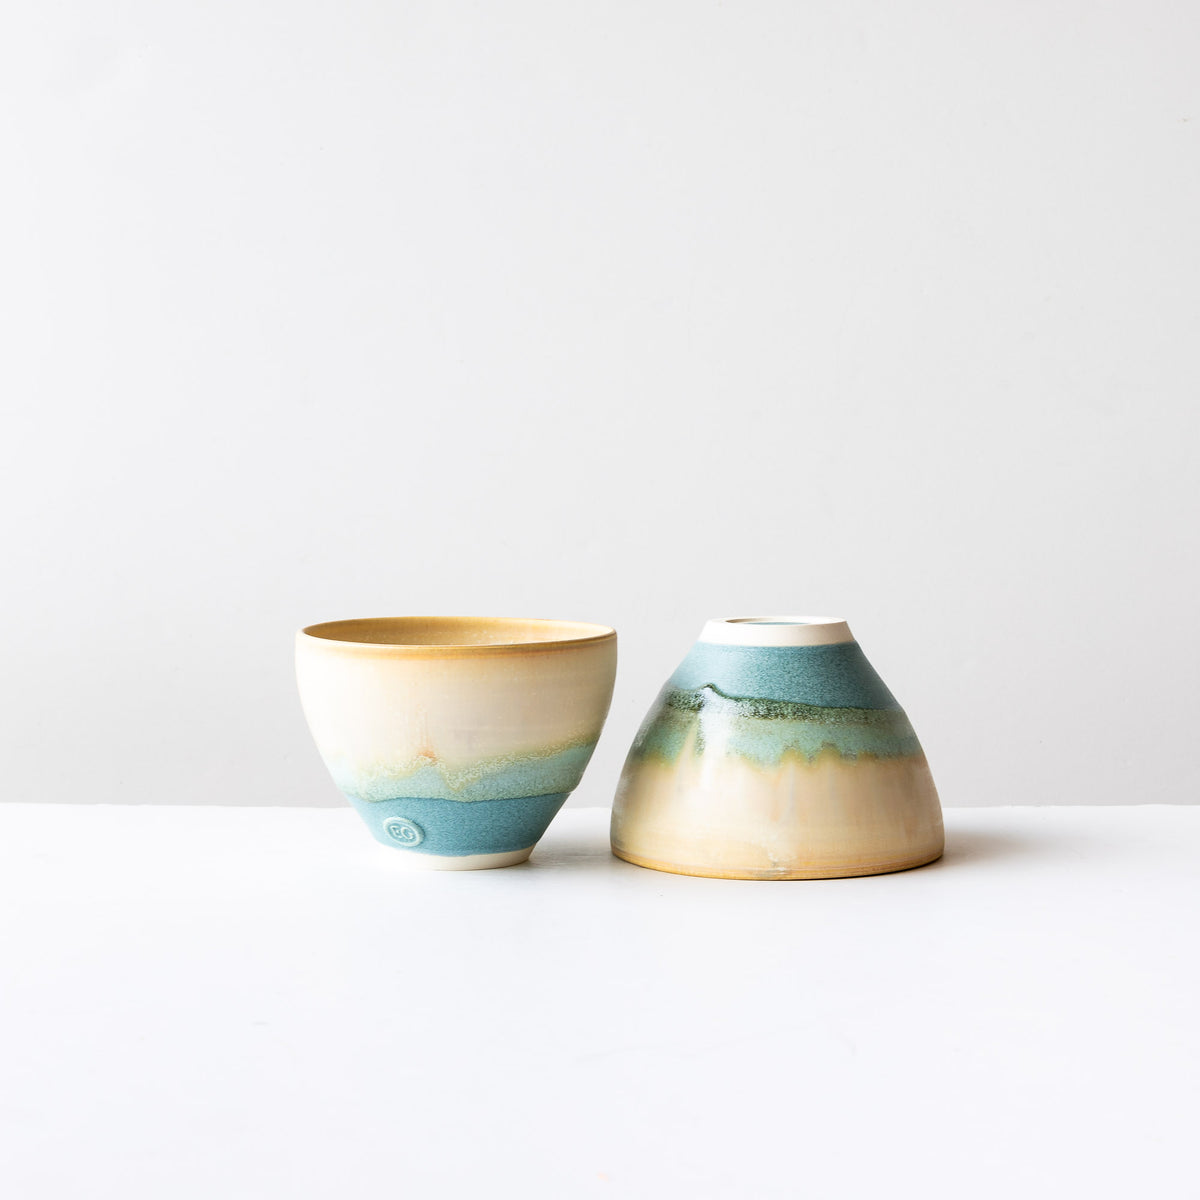 Two Handmade Ceramic Stoneware Bowls - Three Colours - Sold by Chic & Basta